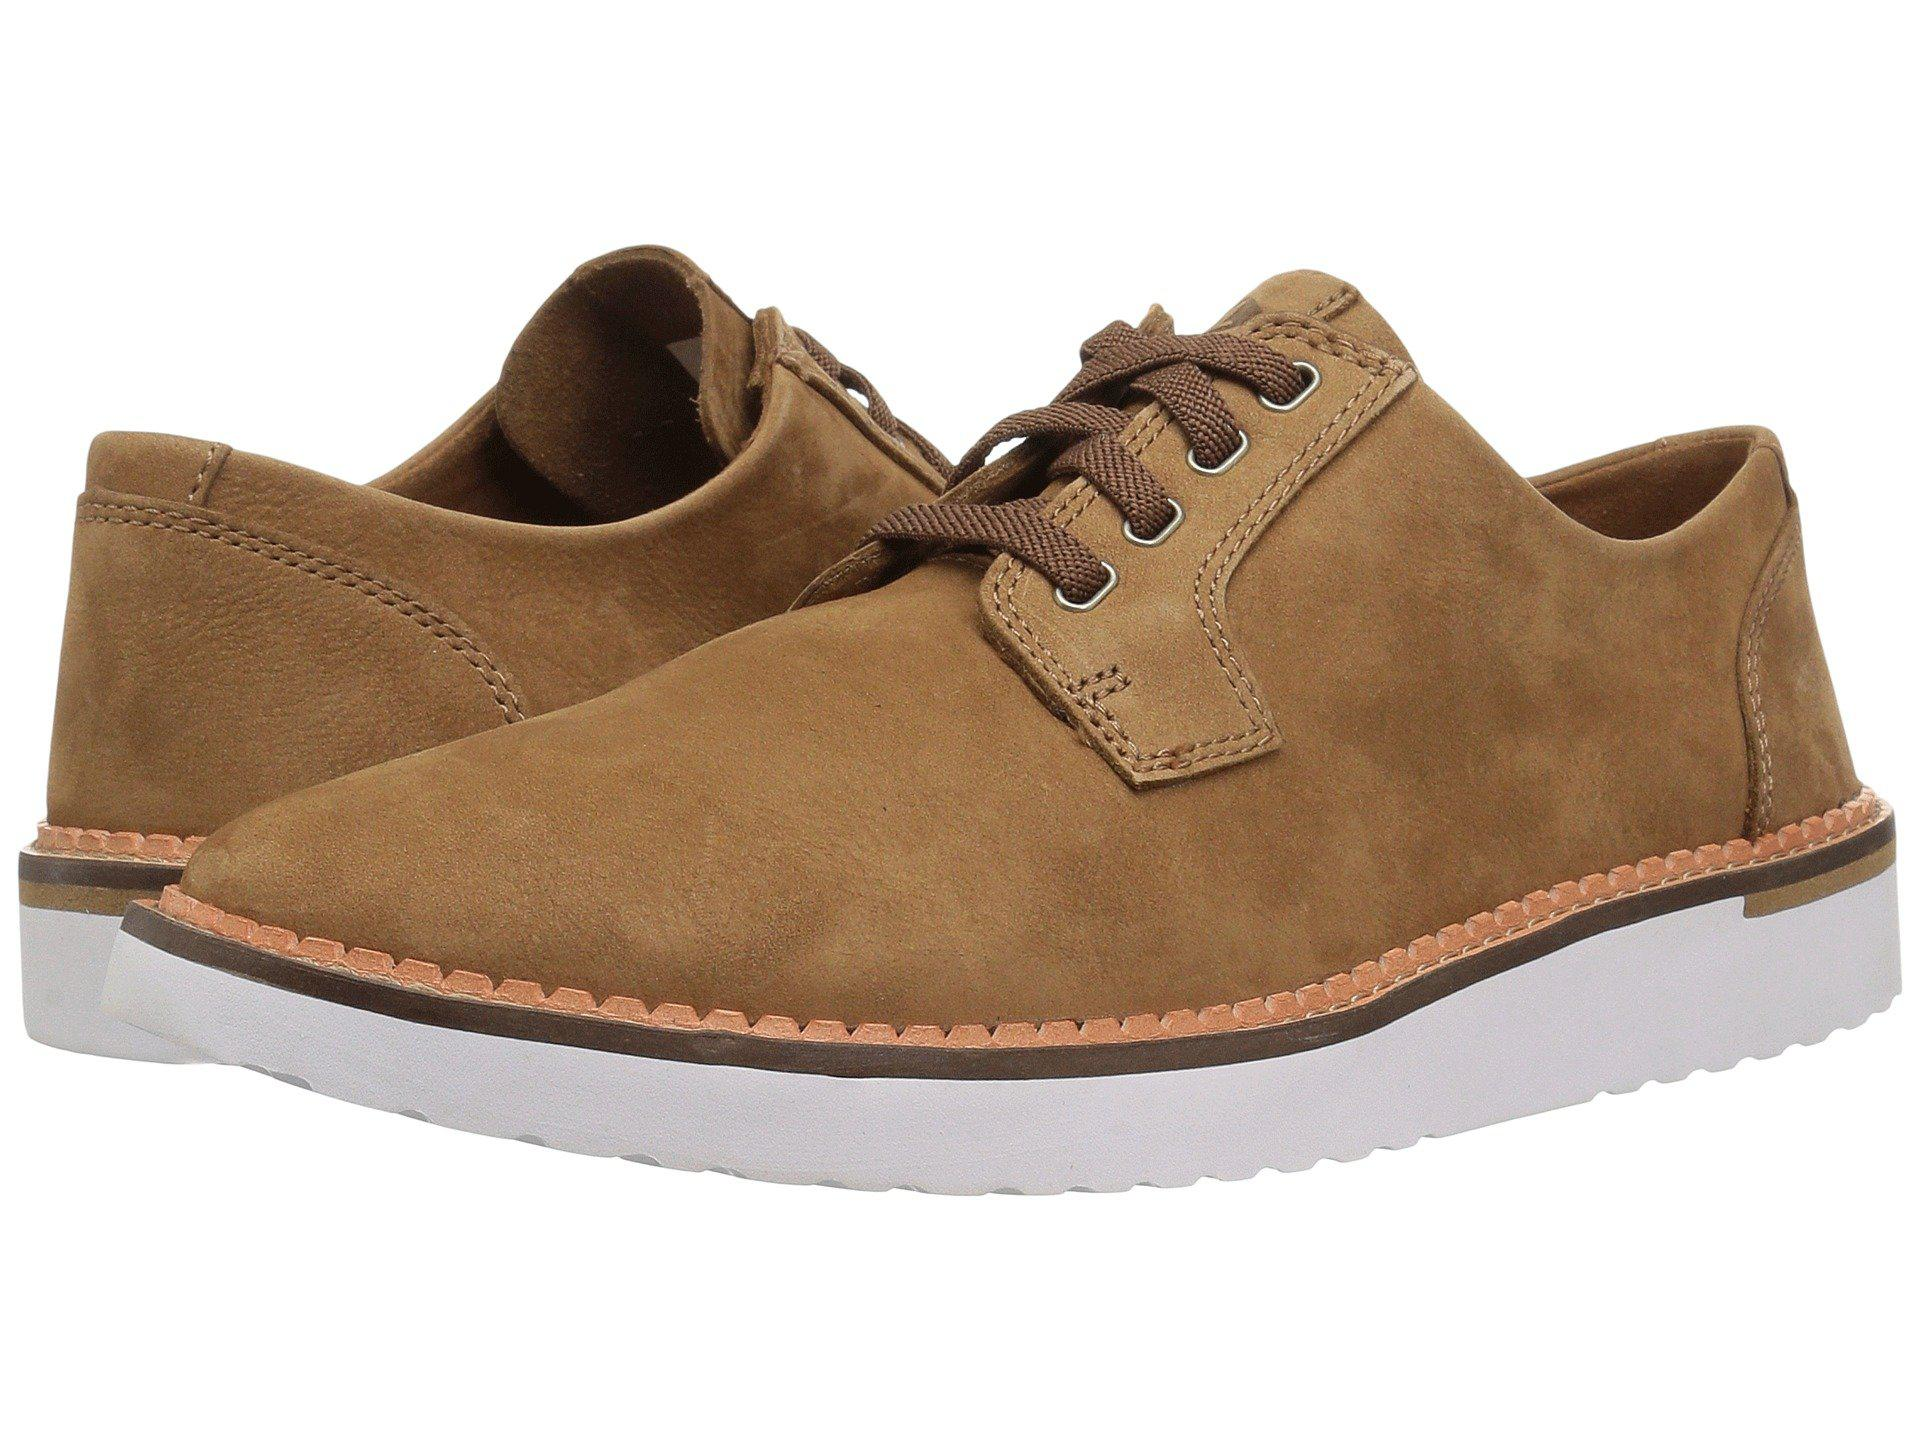 Sperry Top-Sider. Men's Brown Camden Oxford Nubuck